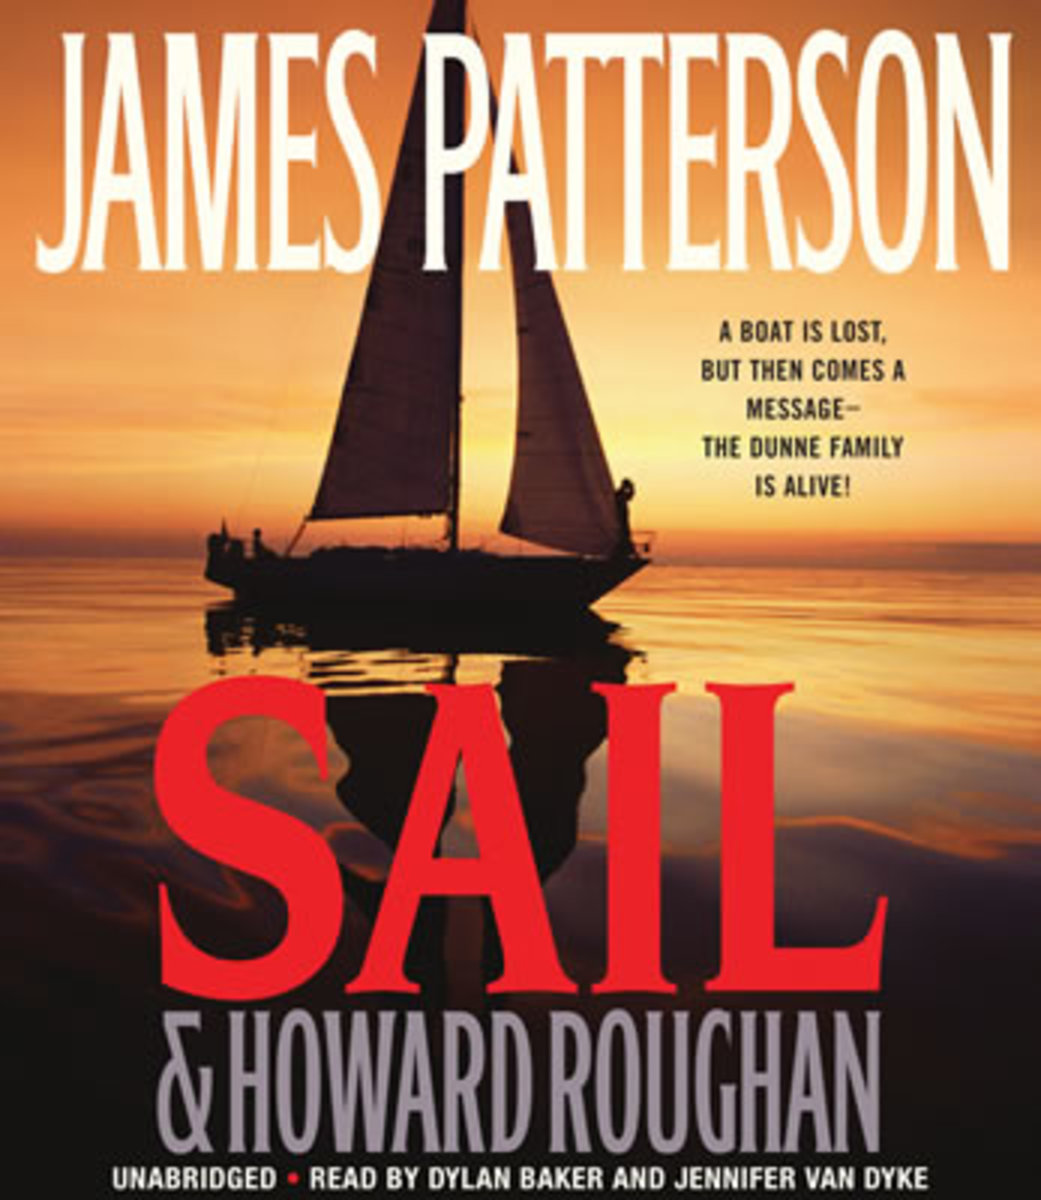 Sail by James Patterson Book Review/Summary